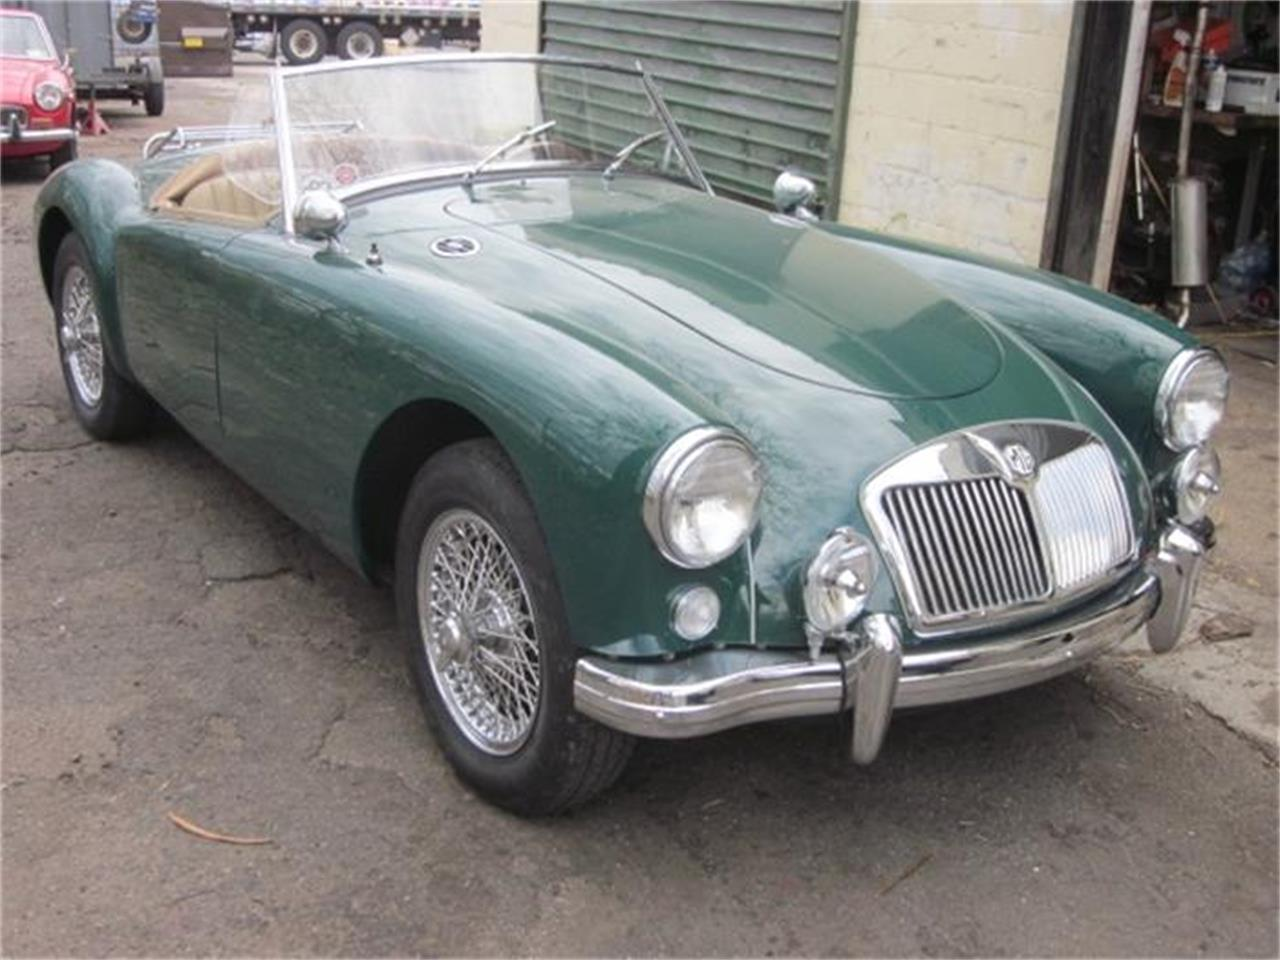 1958 MG MGA for sale in Stratford, CT – photo 13